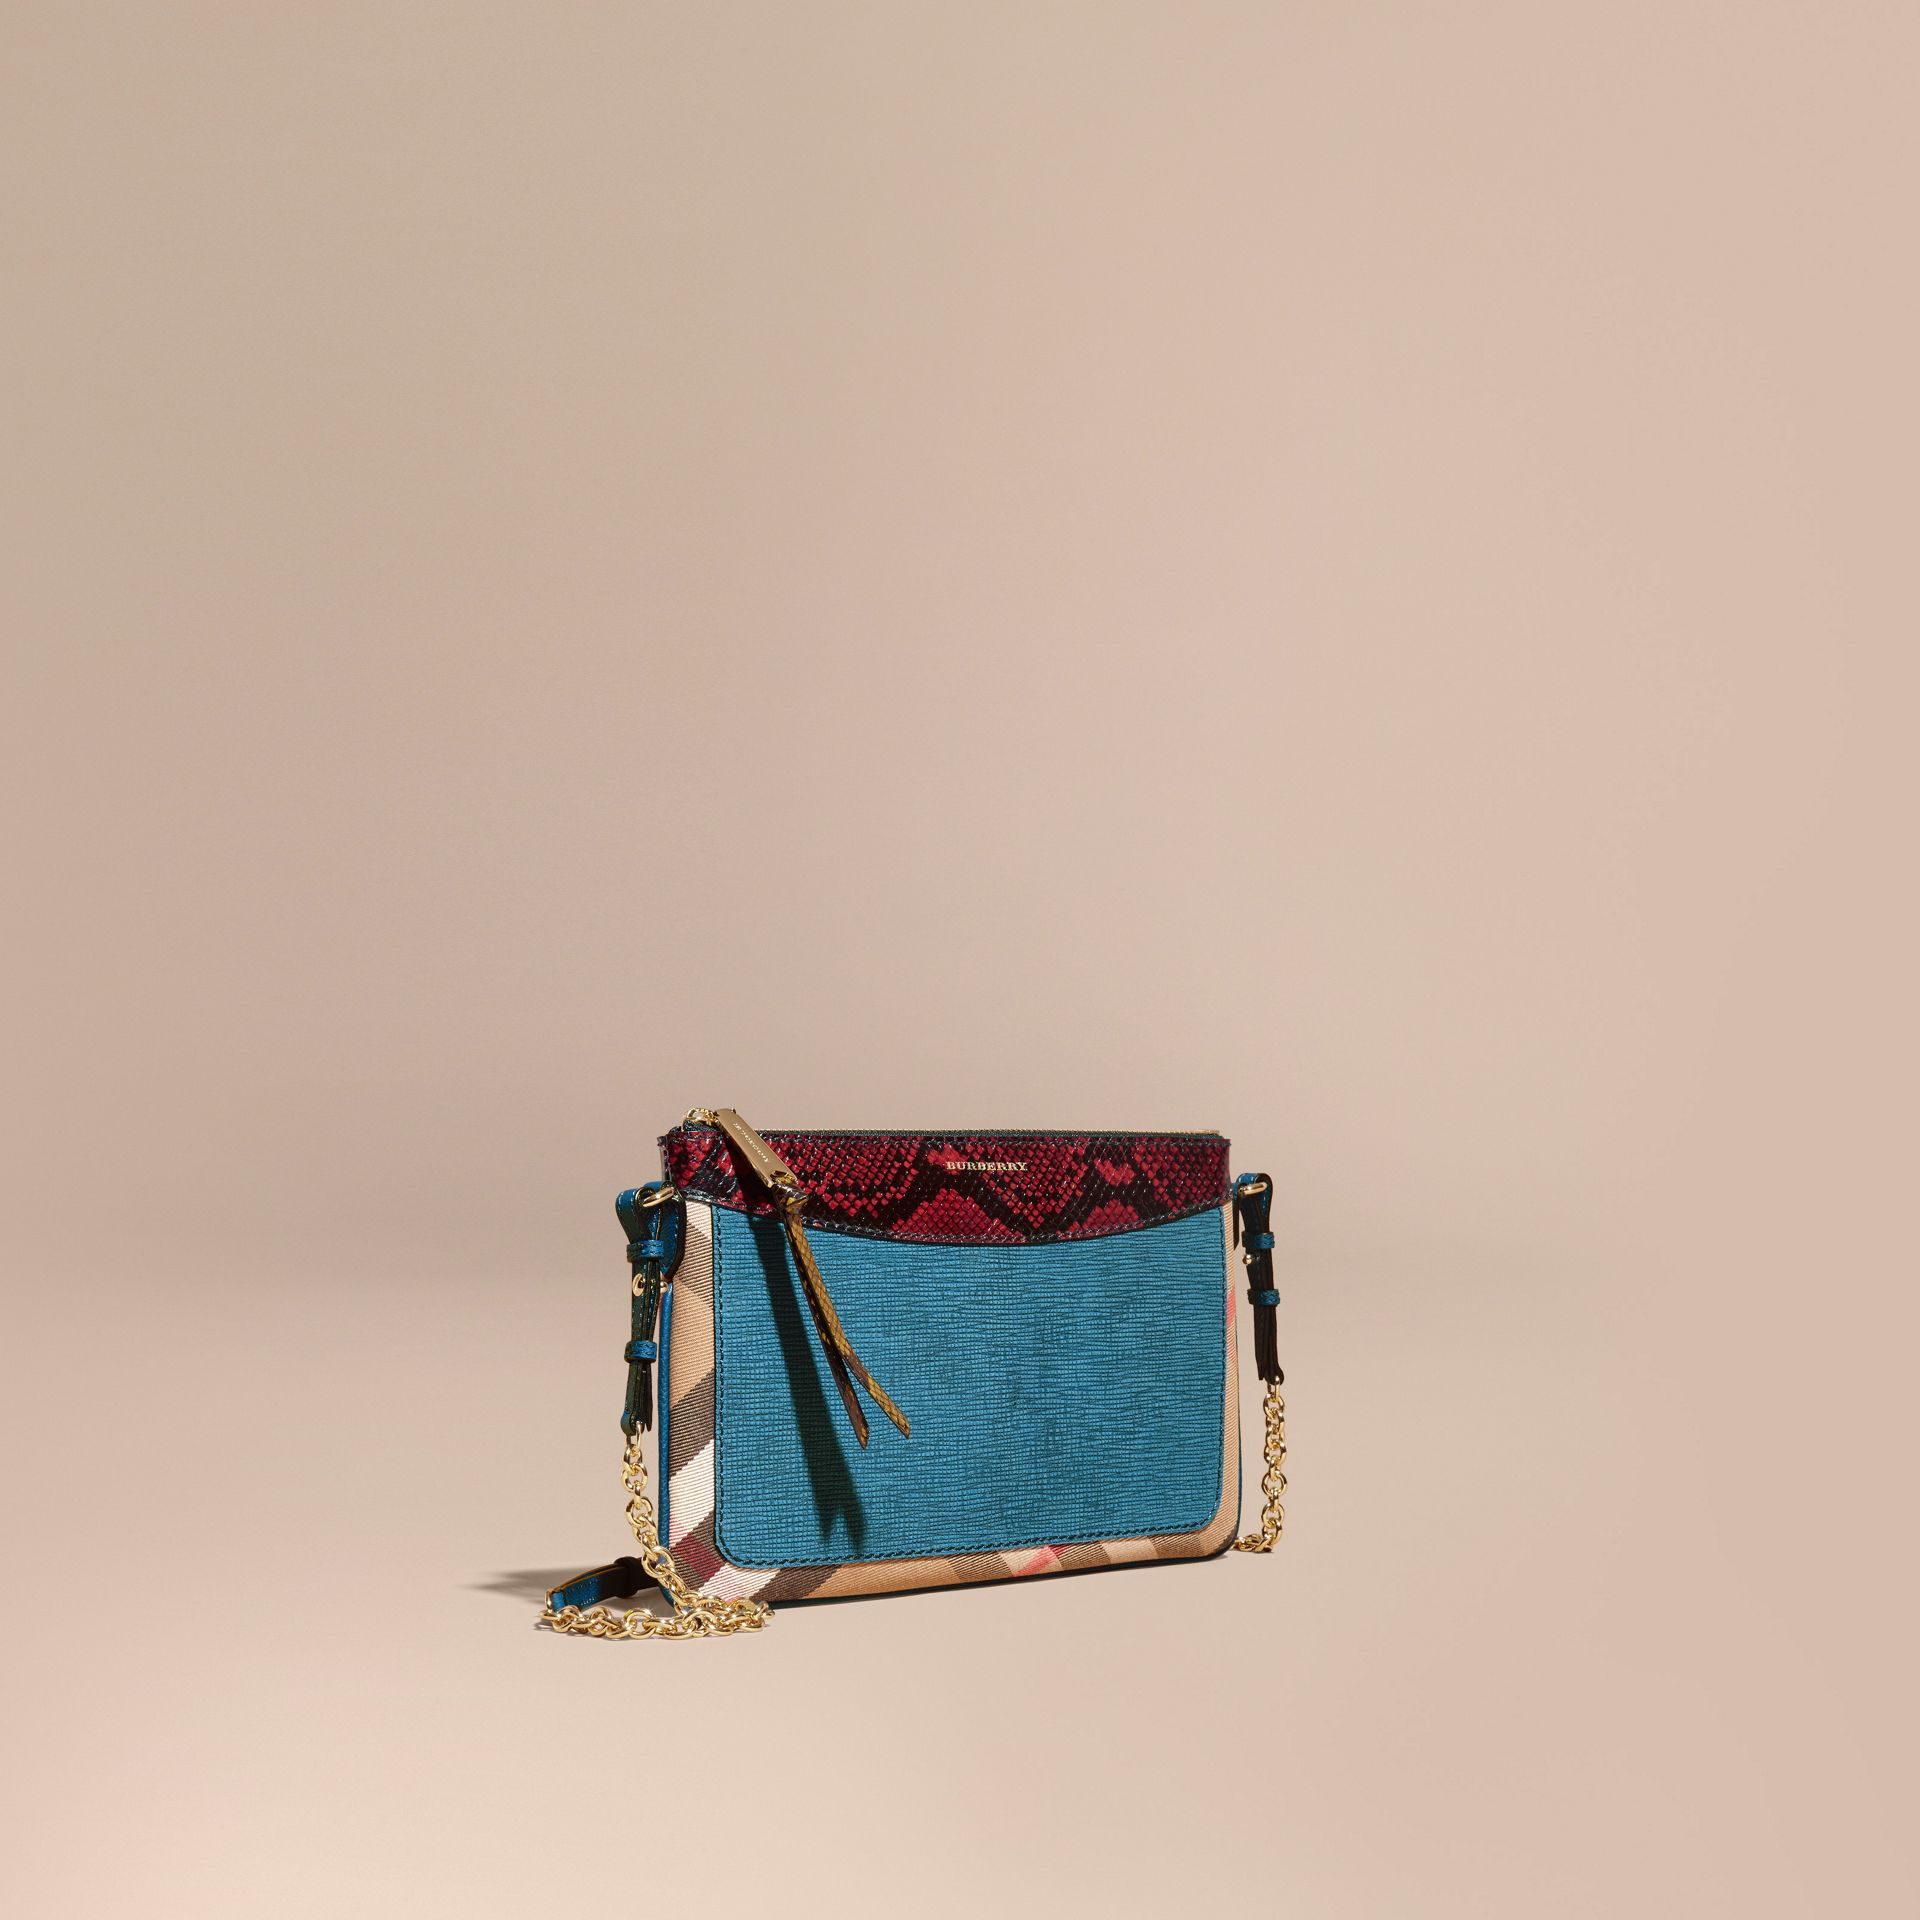 Leather, House Check and Snakeskin Clutch Bag Peacock Blue - gallery image 1